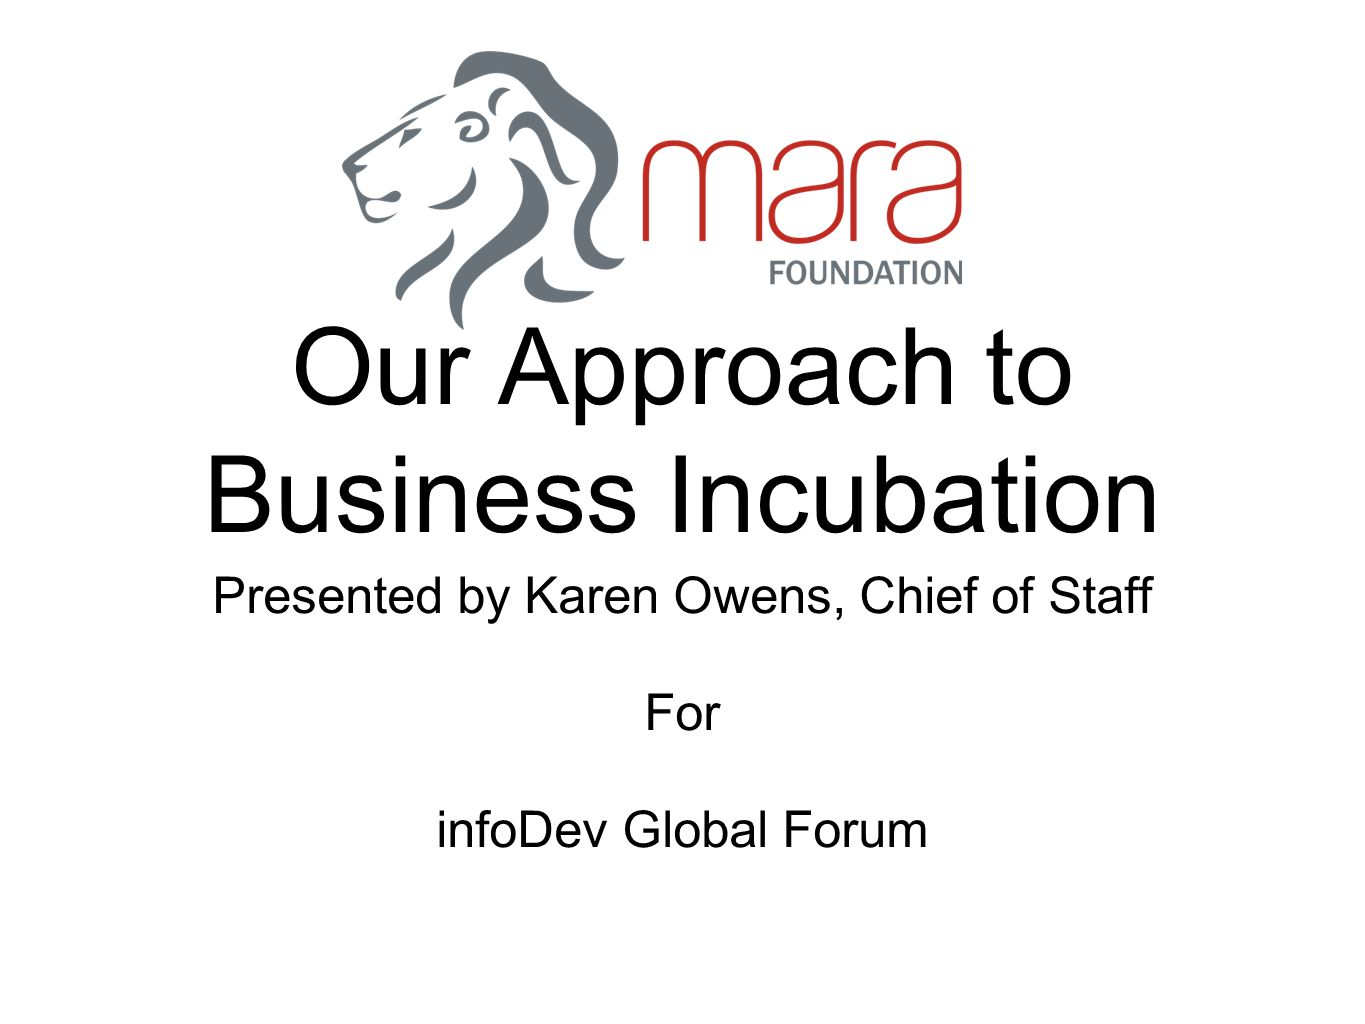 Our Approach to Business Incubation Presented by Karen Owens, Chief of Staff For infoDev Global Forum